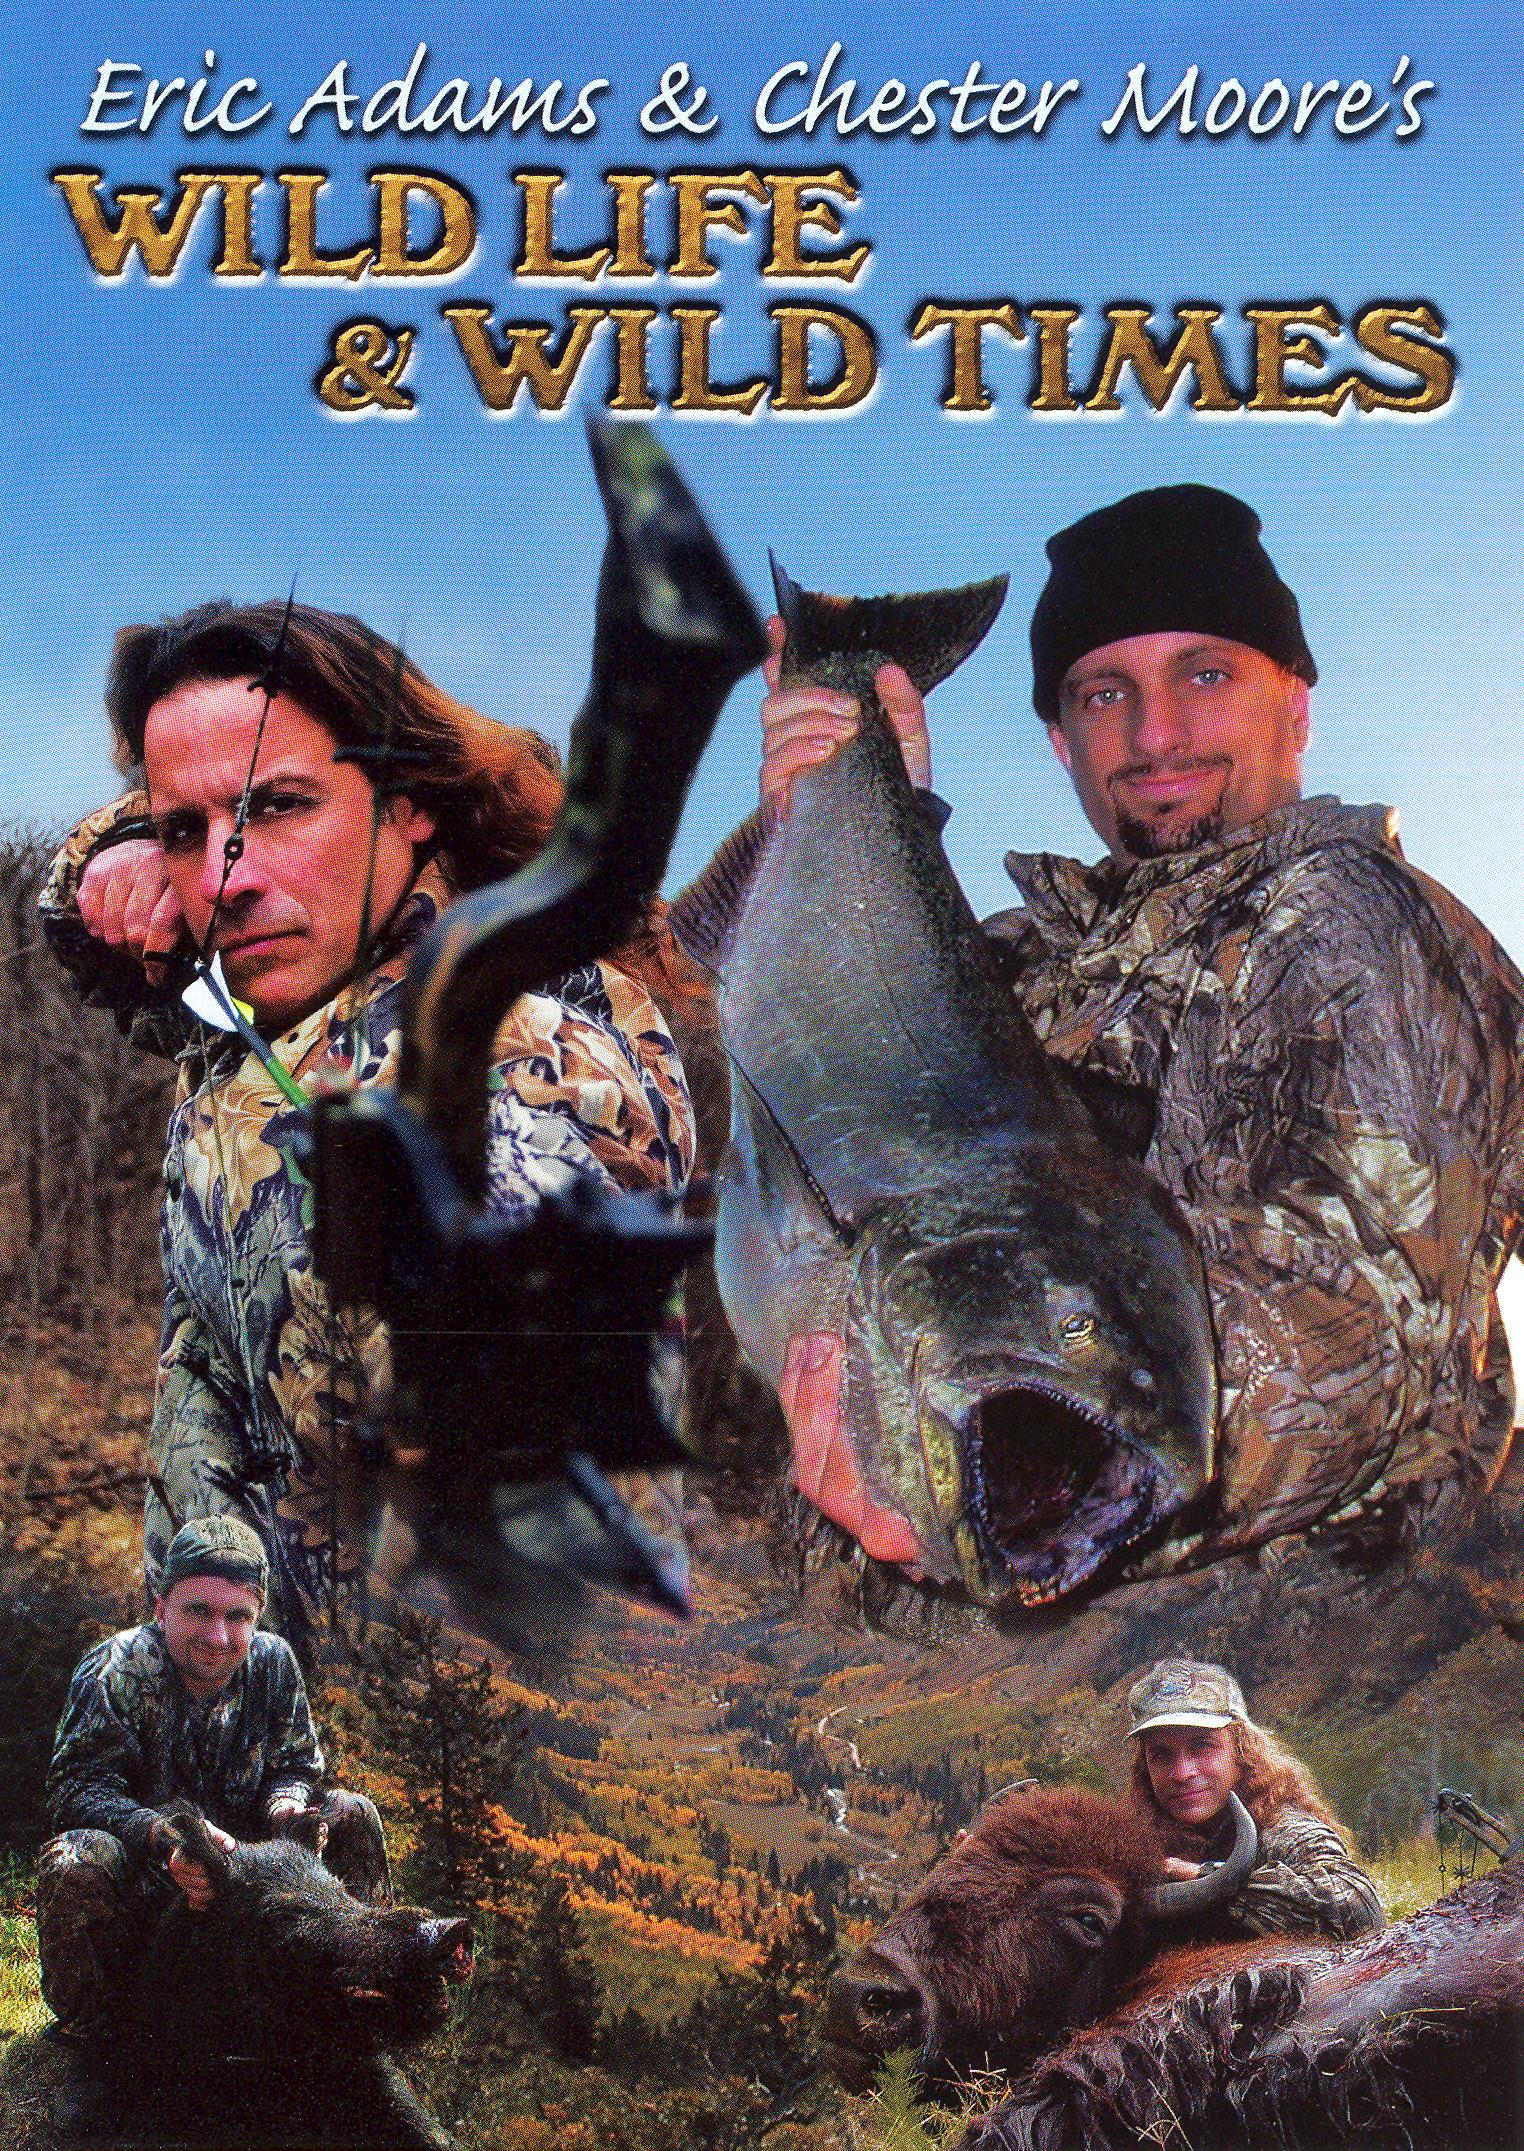 Eric Adams & Chester Moore's Wild Life & Wild Times